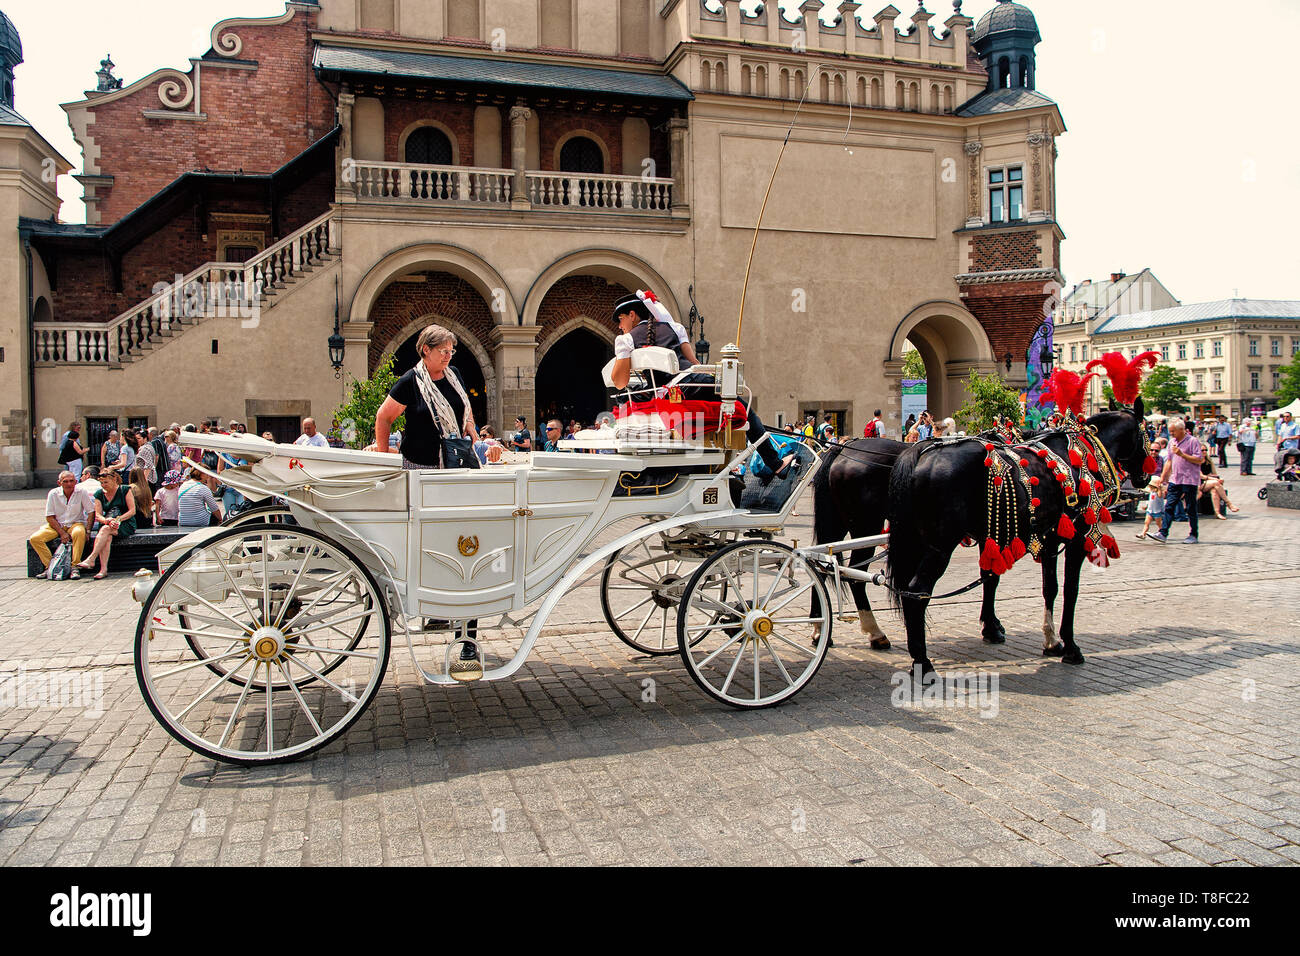 Krakow, Poland - June 04, 2016: tourist woman sit in white carriage with black horses in city square. Vacation, tour, travelling, discovery concept. - Stock Image